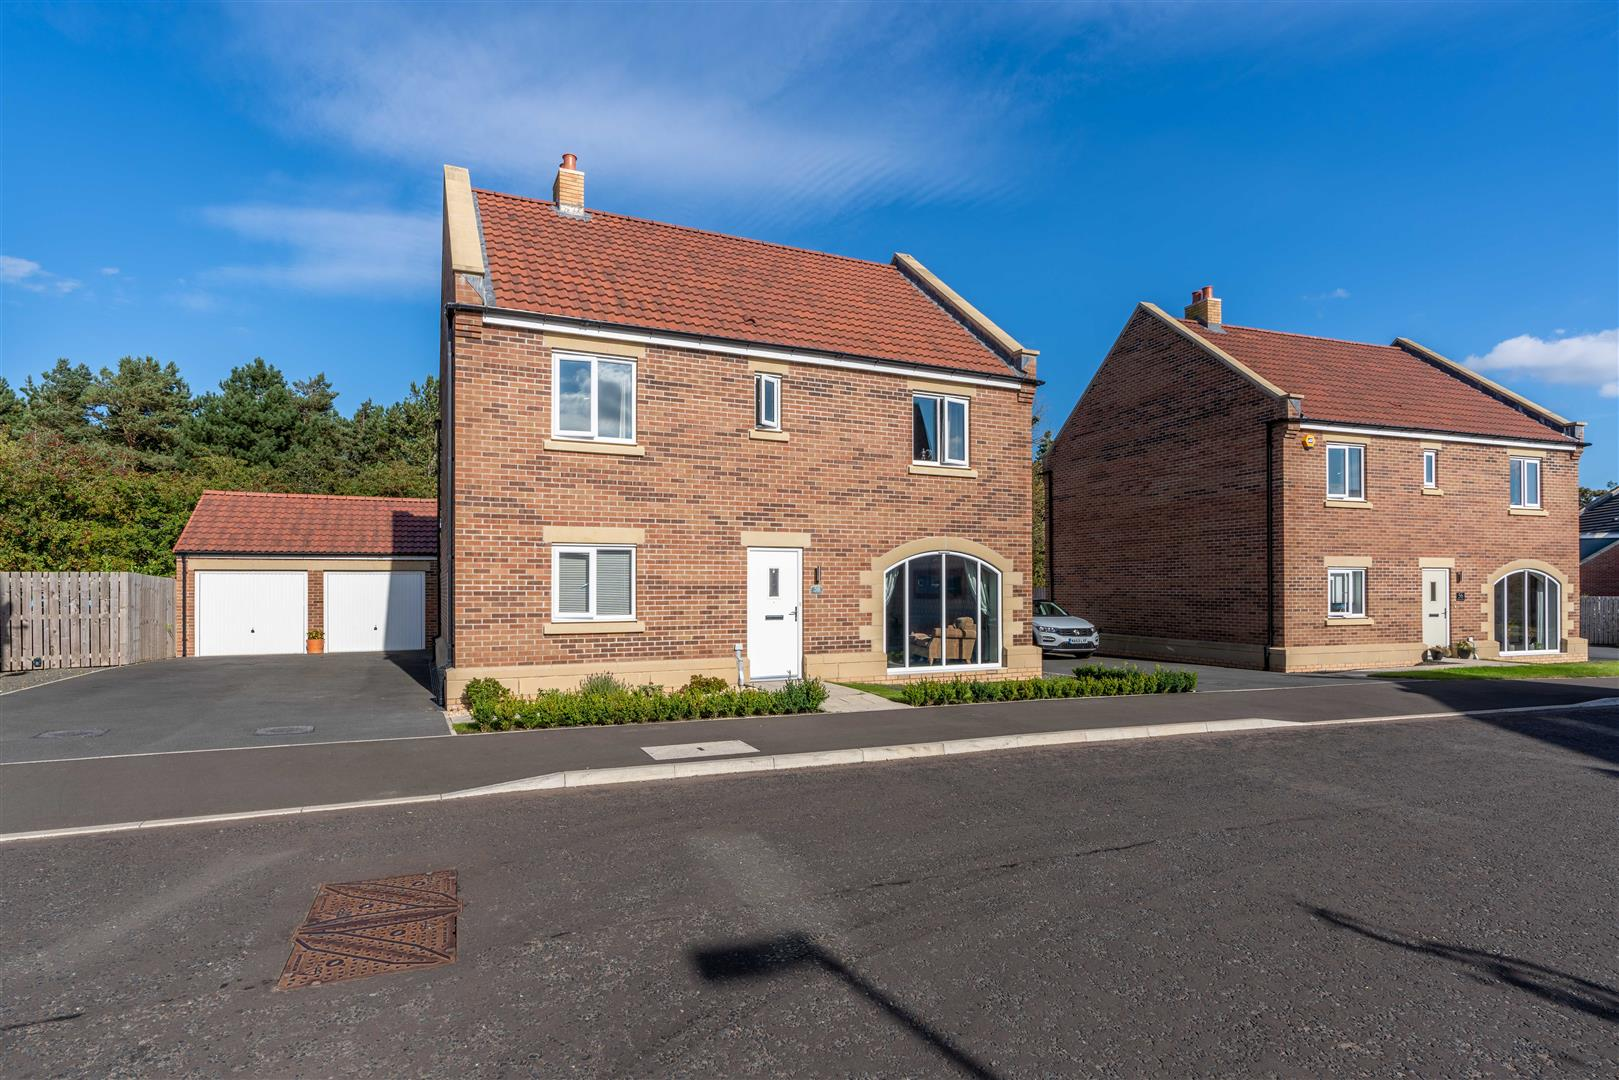 4 bed detached house for sale in Stonecrop Drive, Five Mile Park - Property Image 1